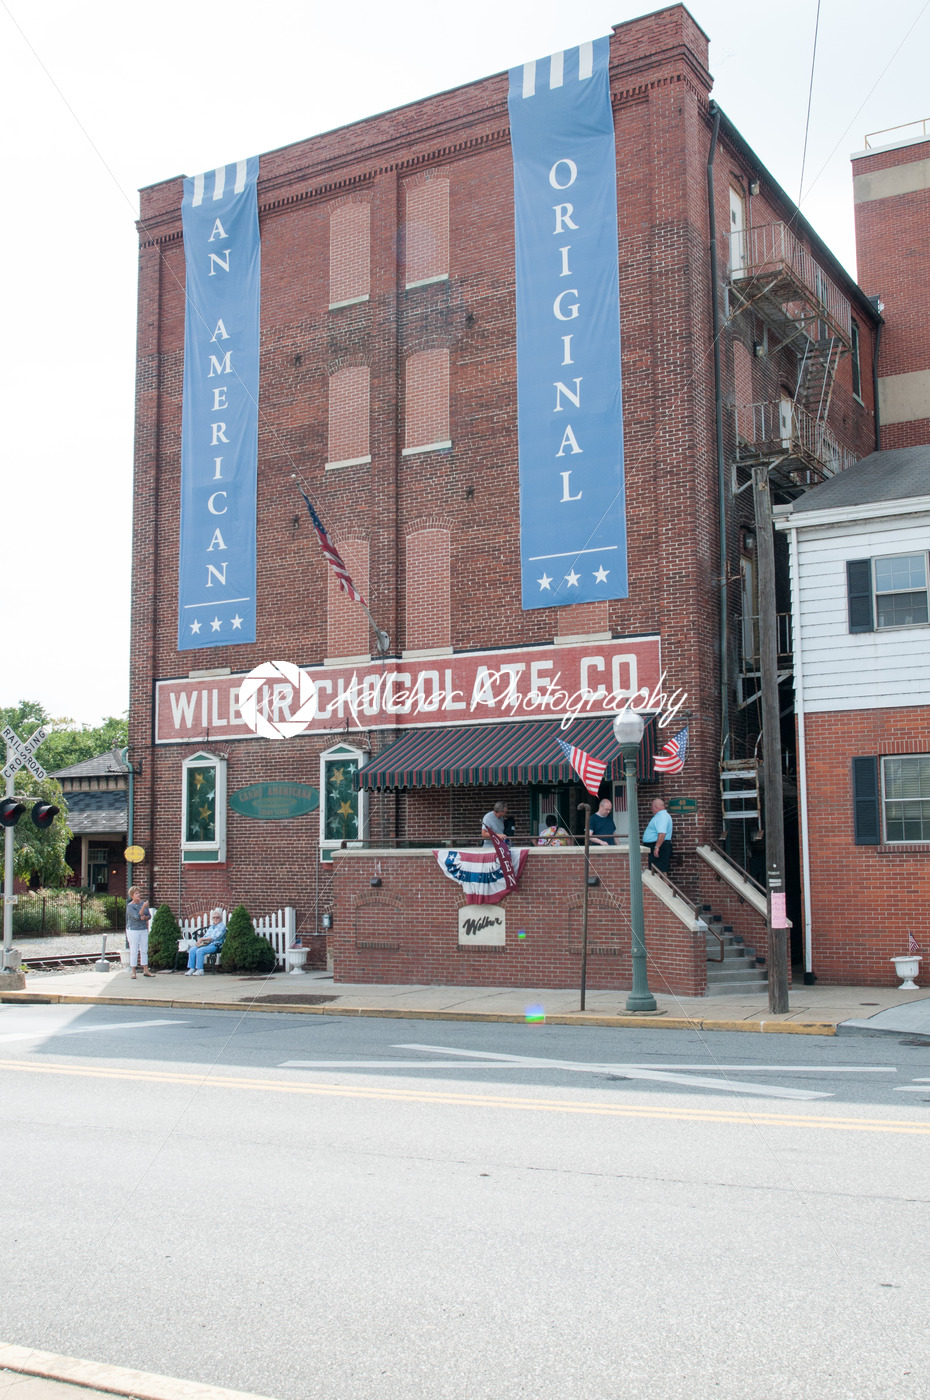 LITITZ, PA – AUGUST 30: The famed Wilbur Chocolate Company headquarters on Route 501 in Lititz on August 30, 2014 - Kelleher Photography Store